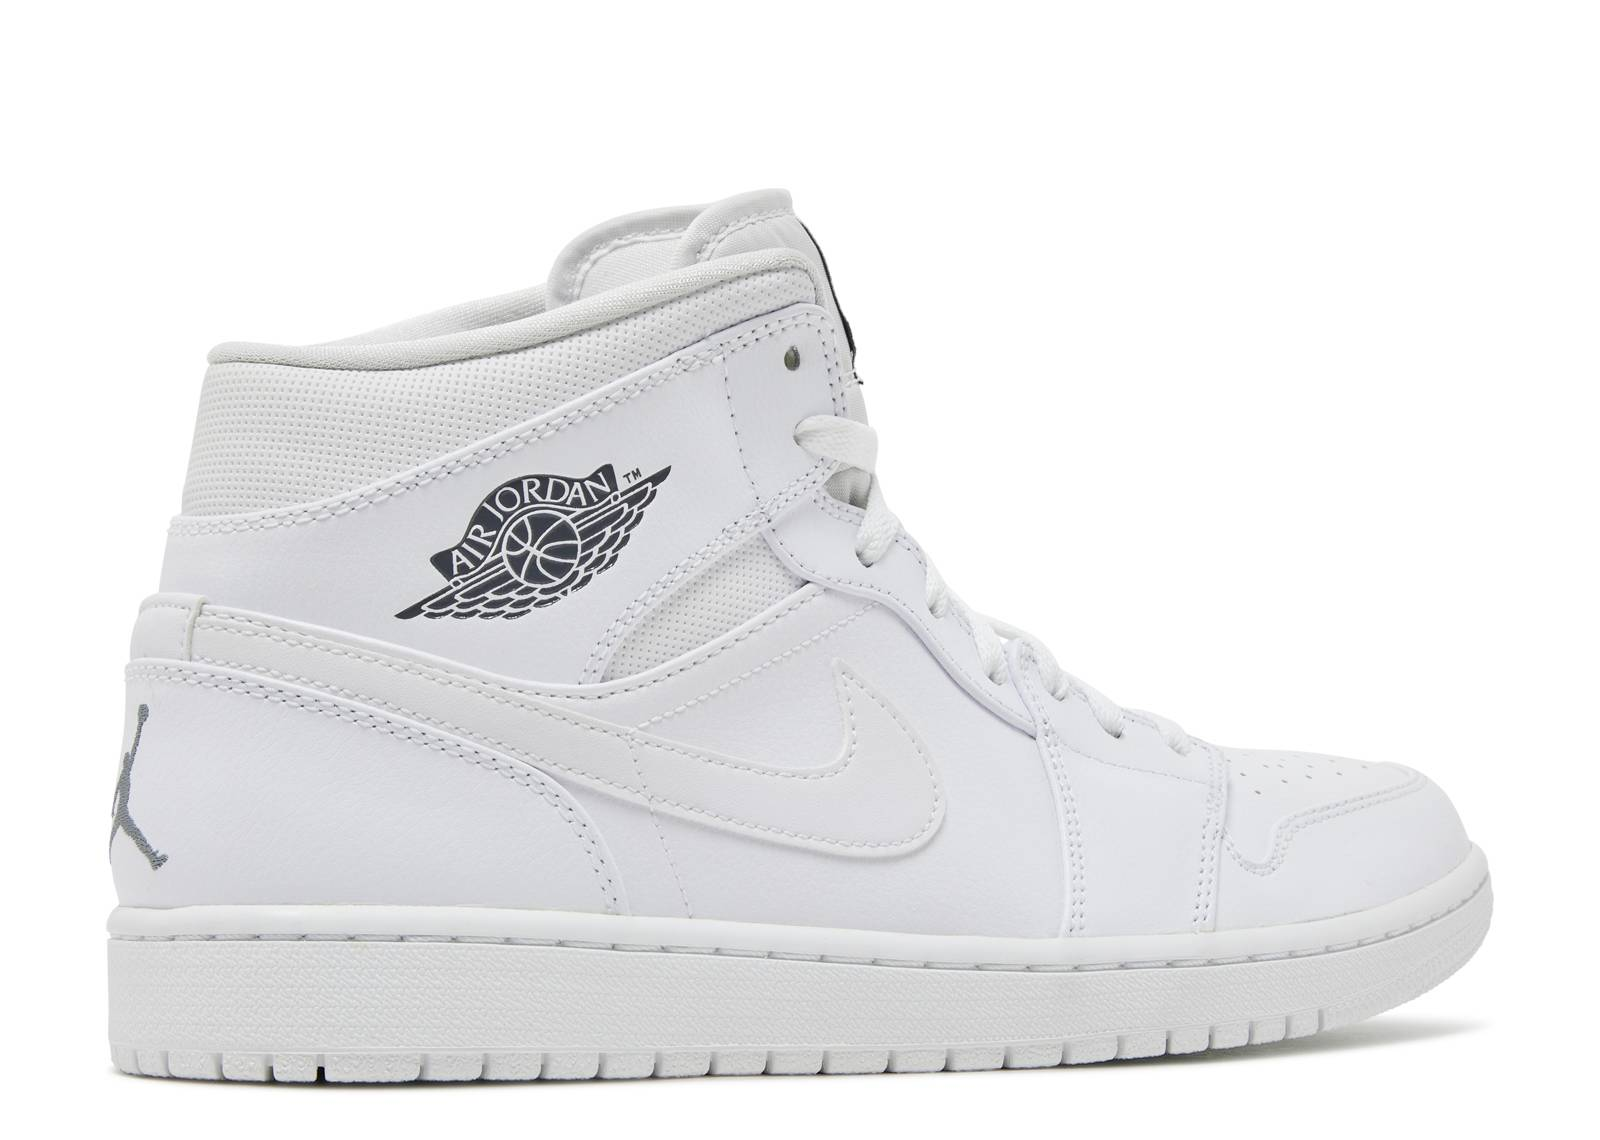 air jordans 1 mid white sock